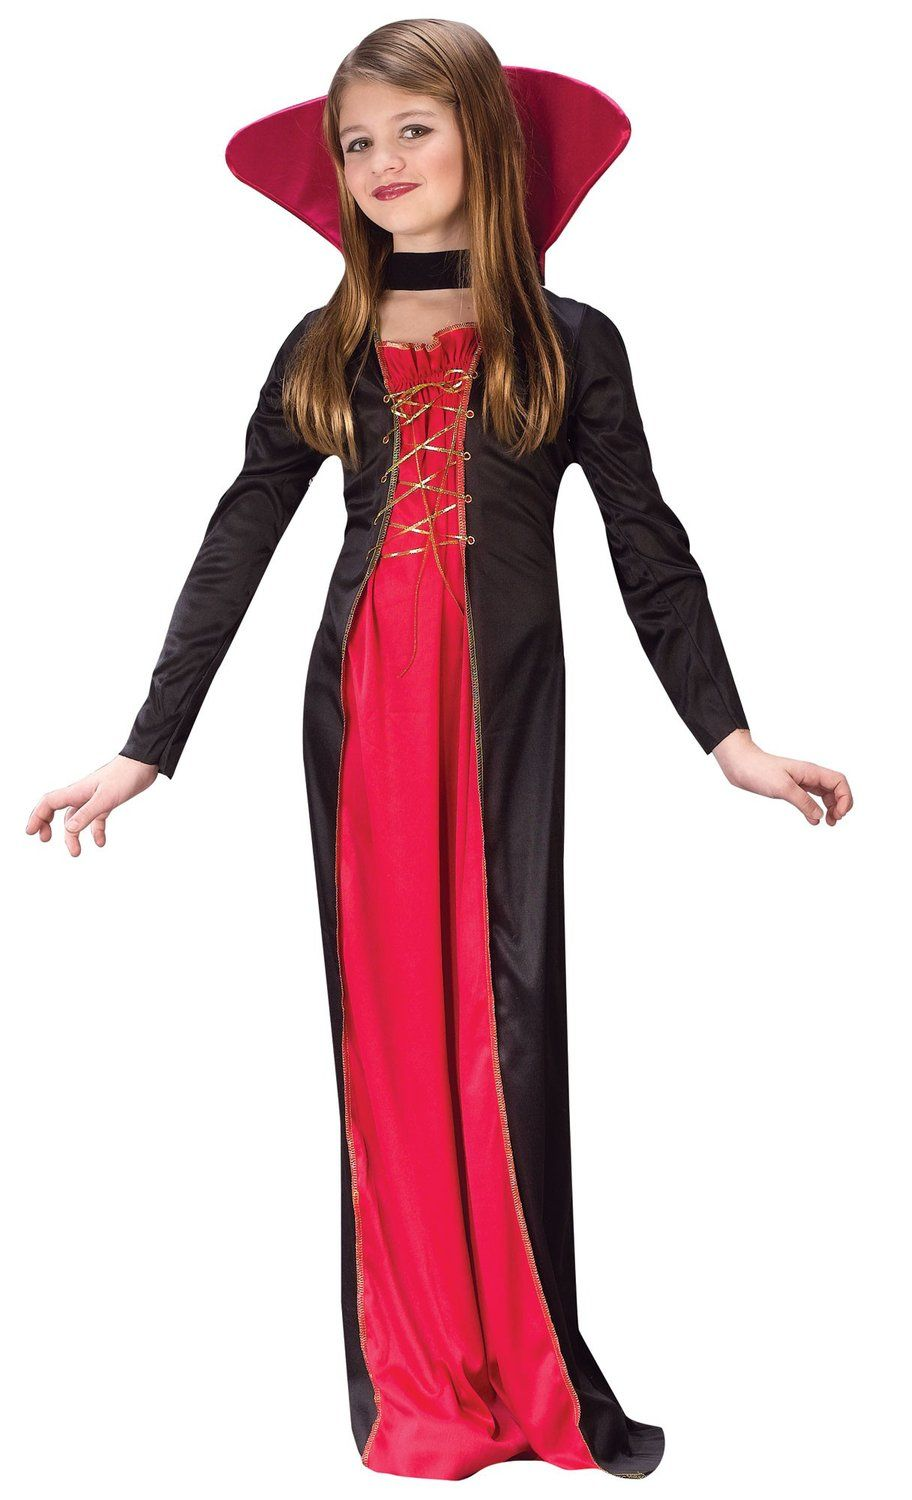 tween girl vampire costumes kids victorian vampiress costume kids vampire costumes mr costumes - Gir Halloween Costumes